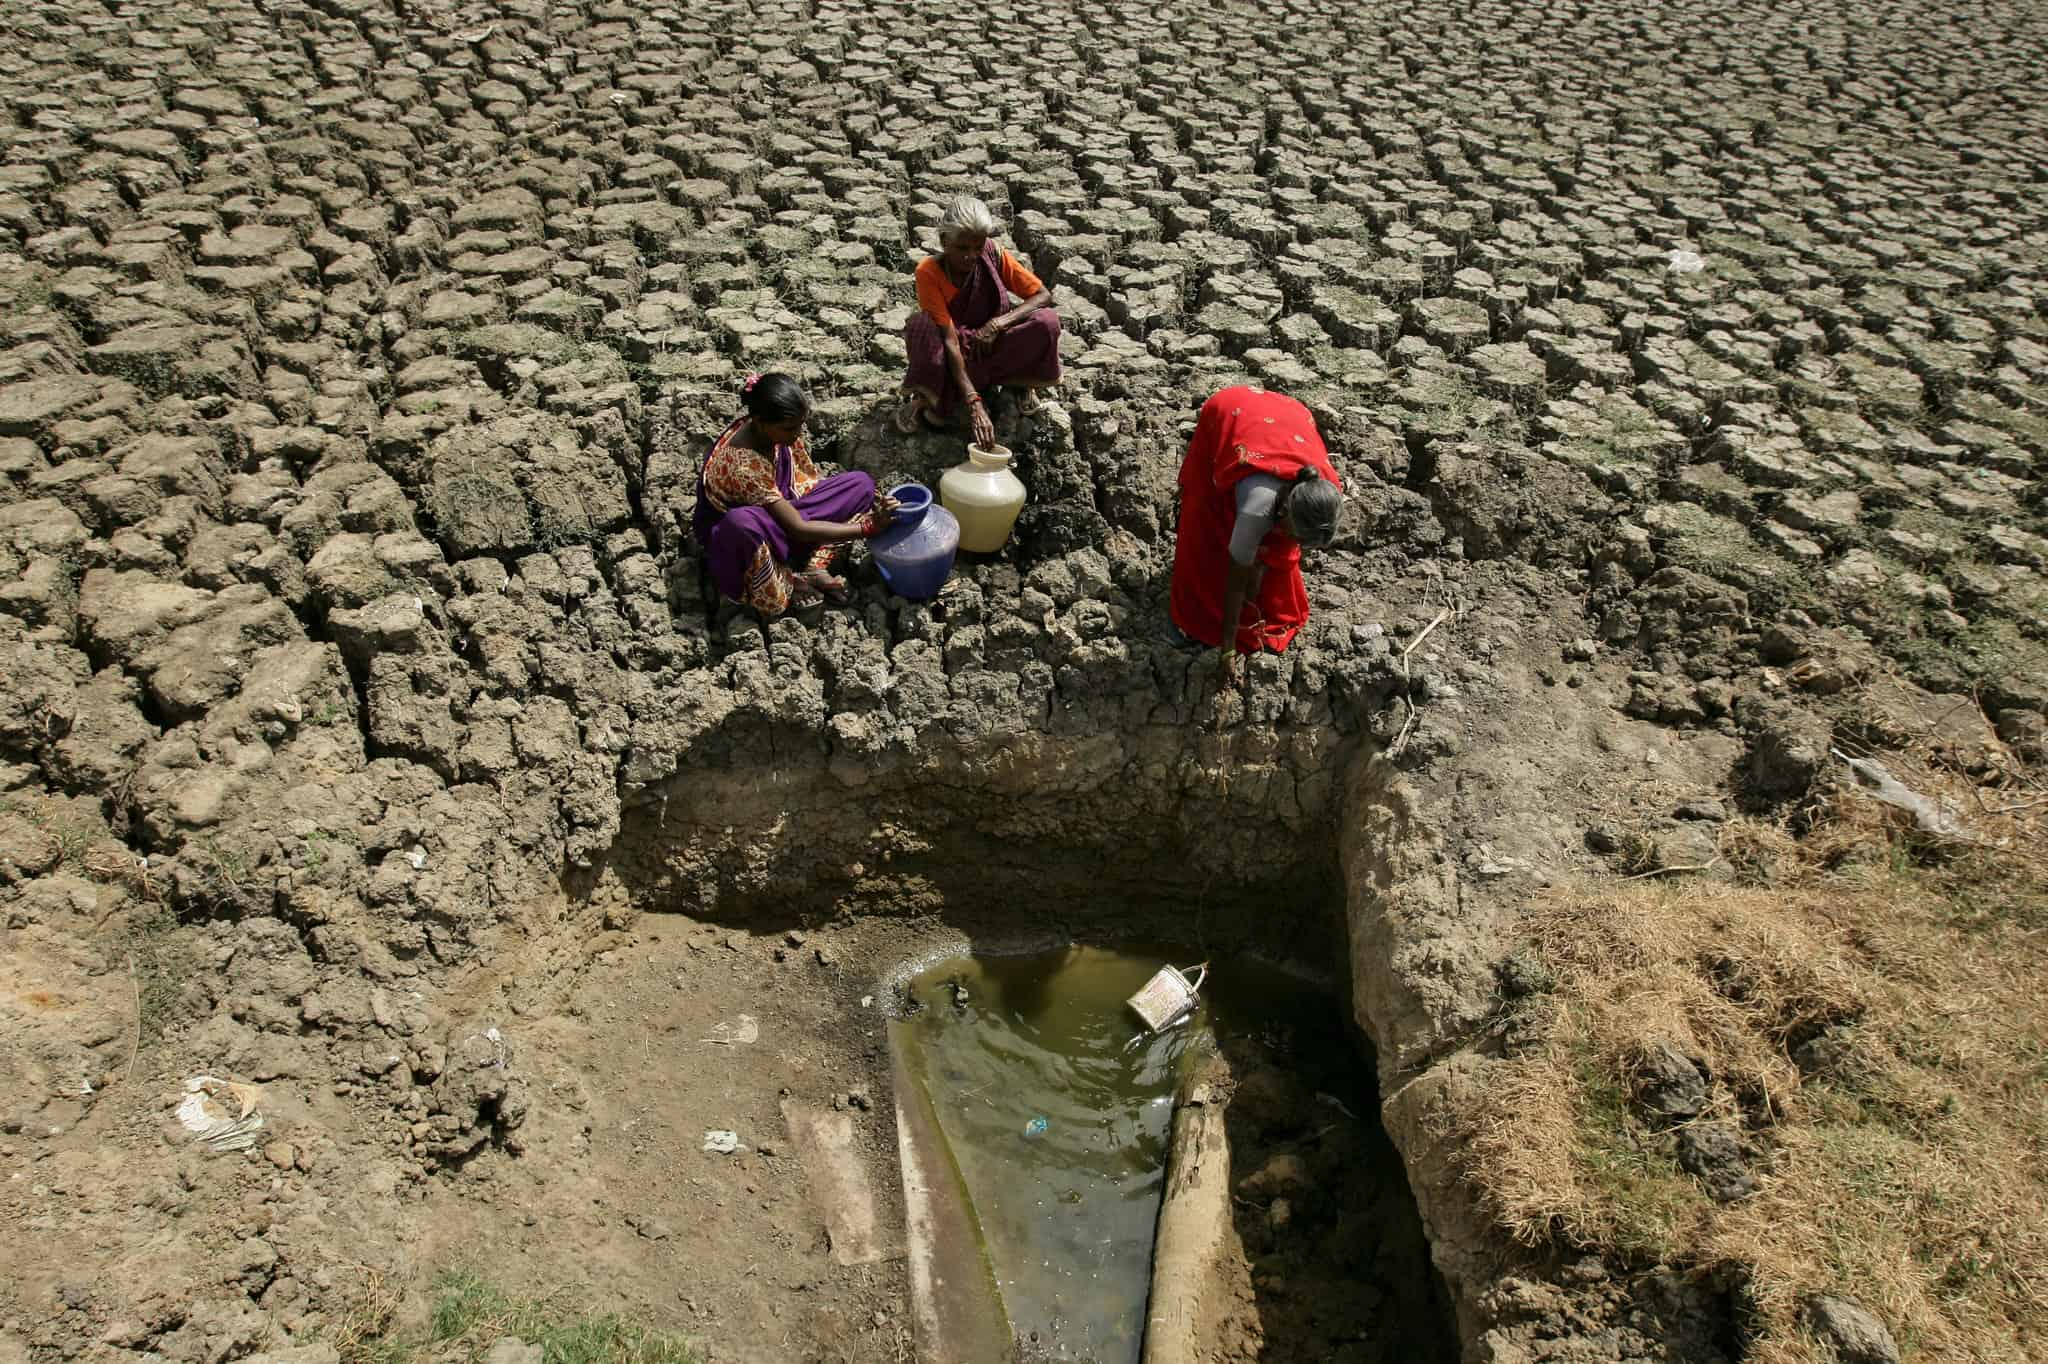 Chinese The May-June India-Pakistan heatwave saw temperatures reach as high as 50.8 °C.